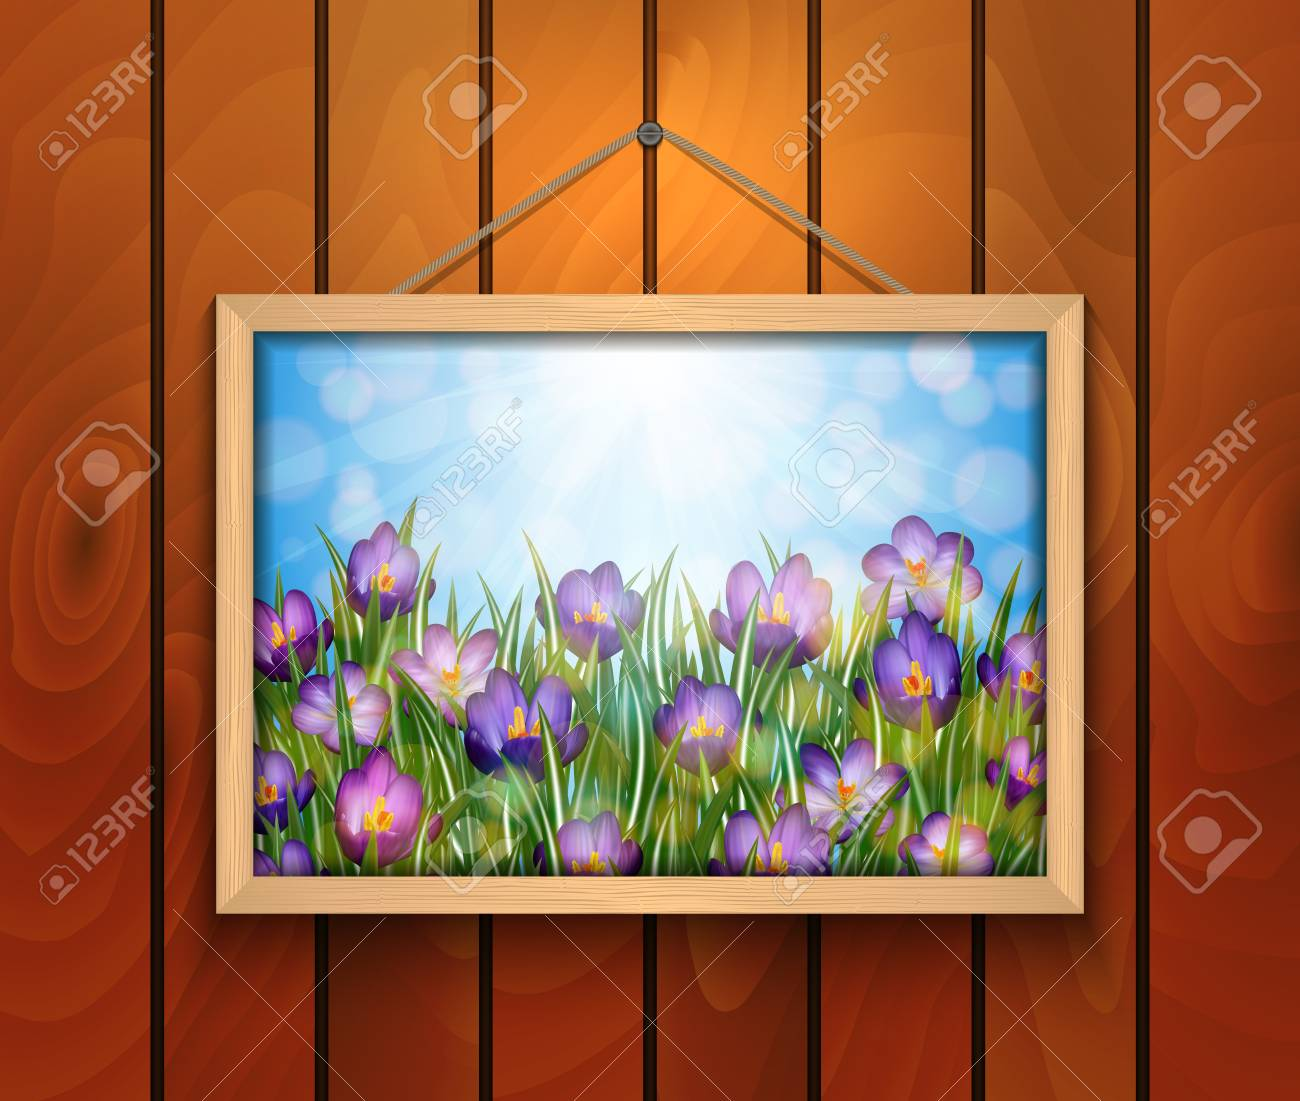 Illustration Of Purple Crocus Flowers In Picture Frame Hanging